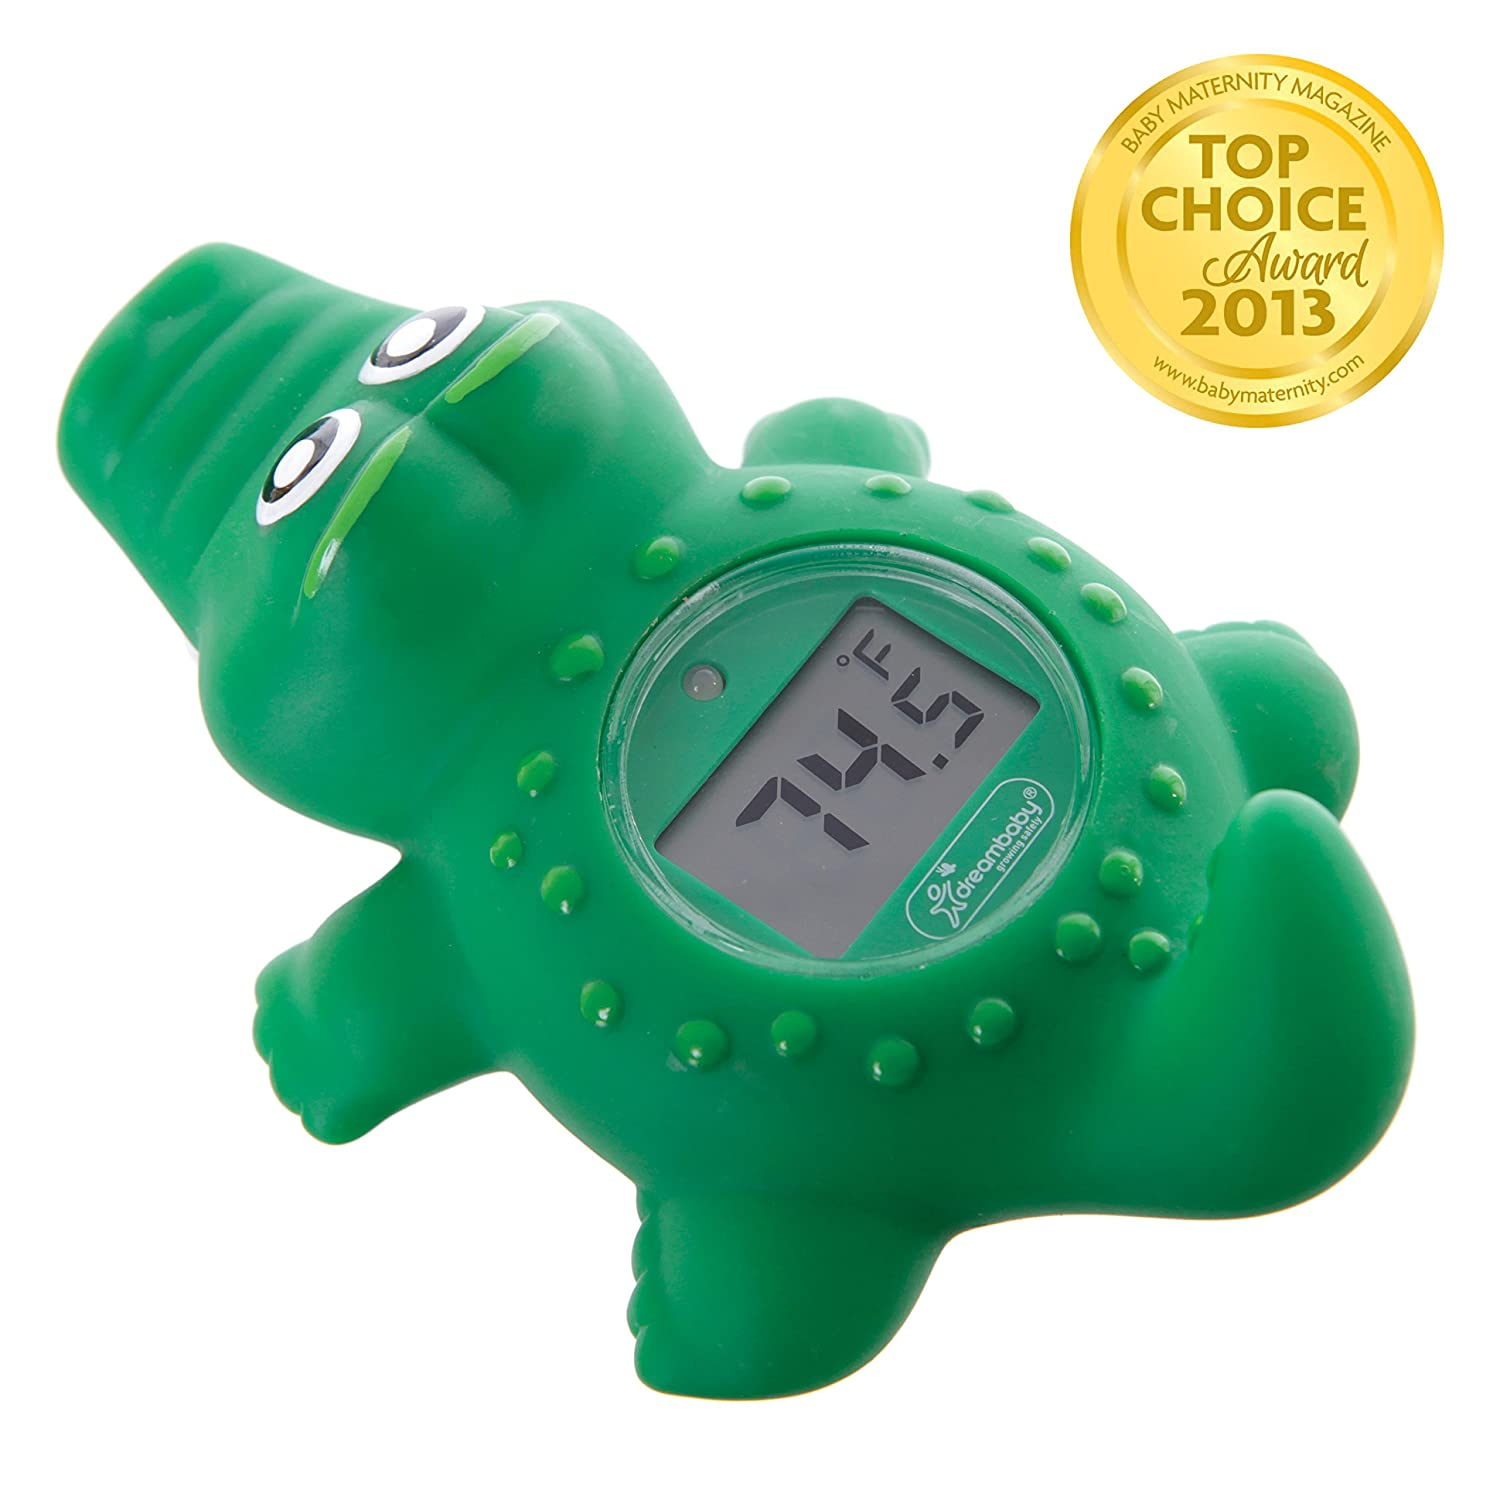 Turtle Dreambaby Room /& Bath Thermometer BPA Free Accurate Temperature Gauge